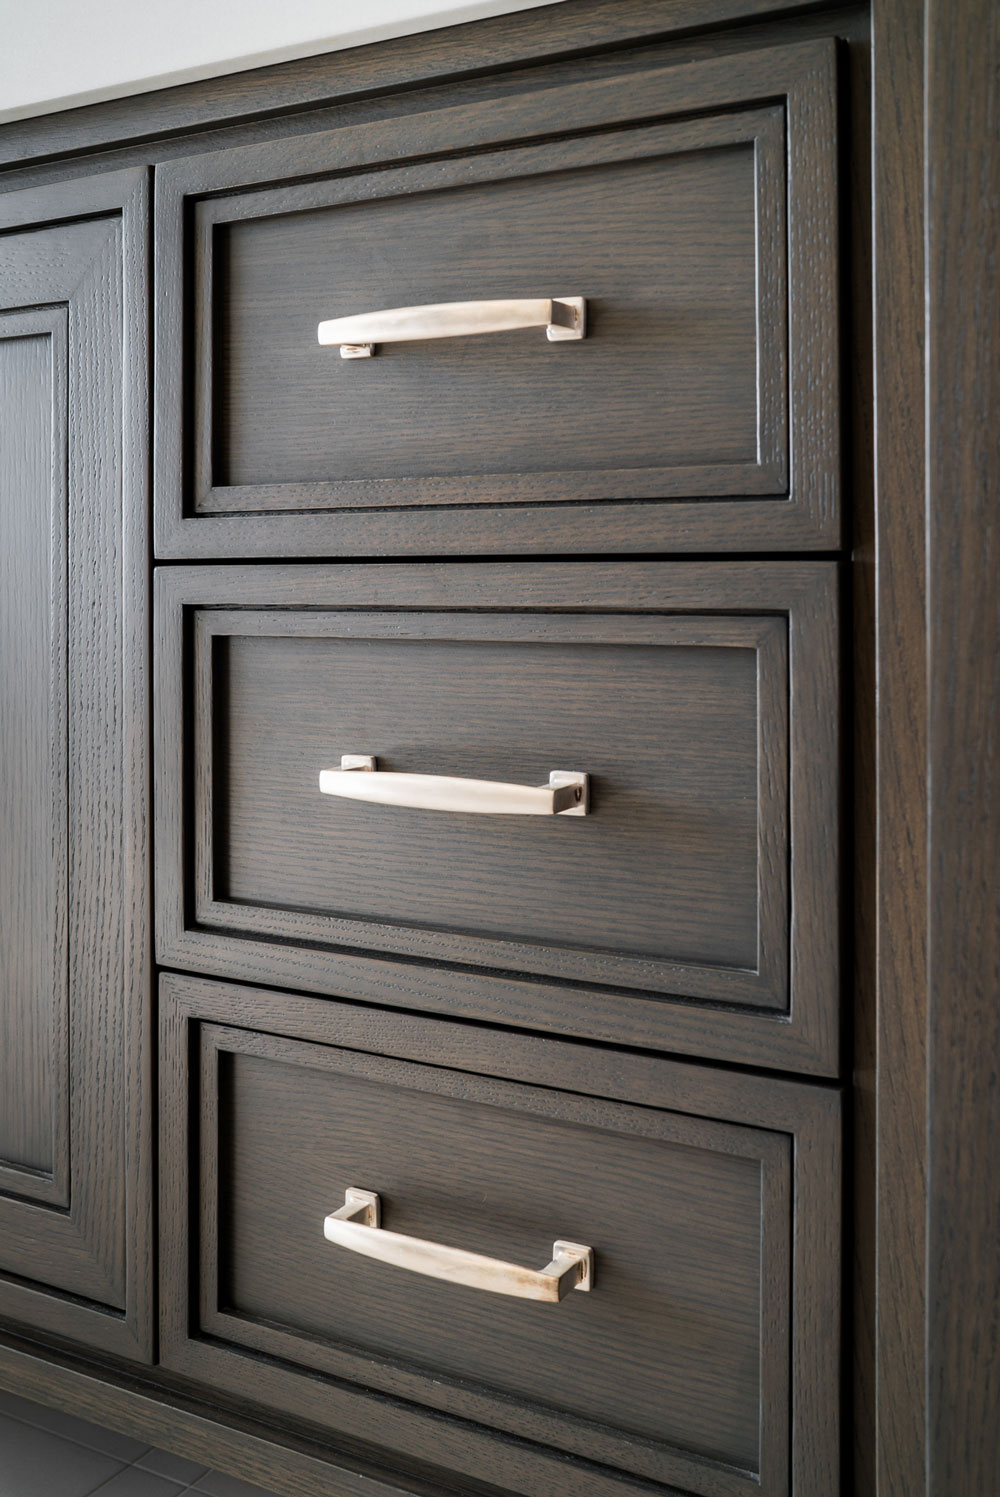 Cabinetry-Detail-Corbin-Reeves.jpg